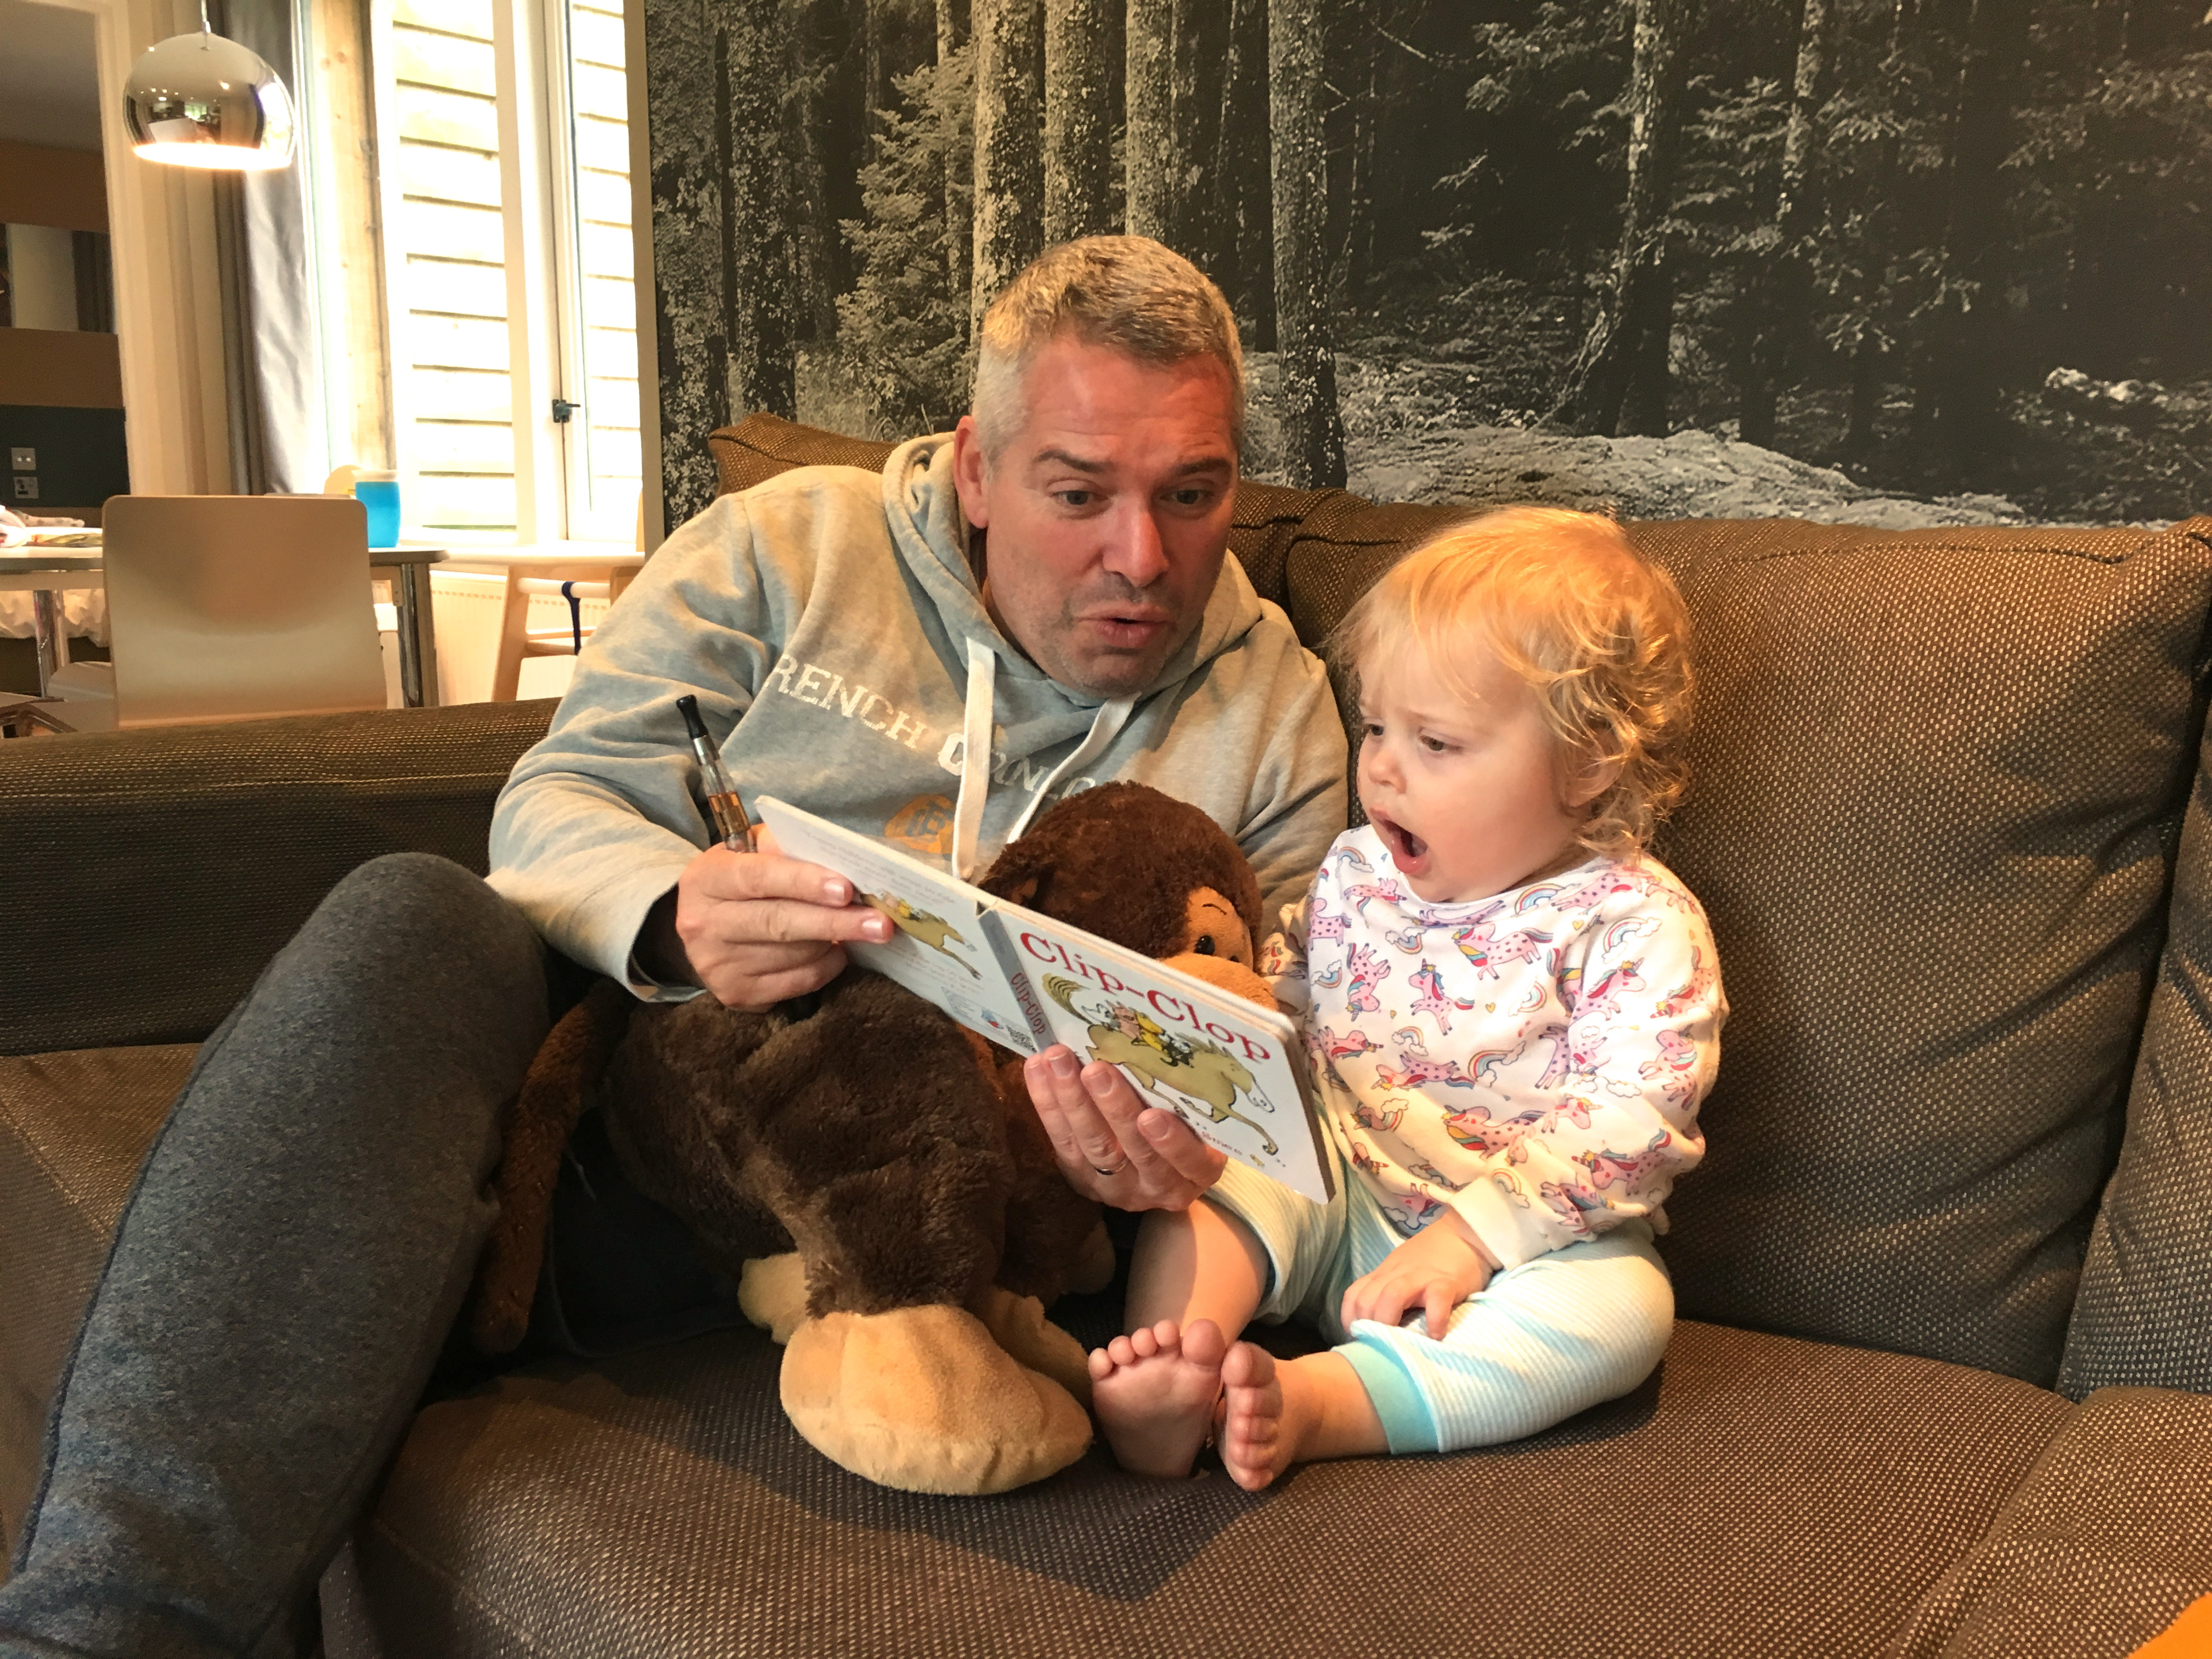 14 months old girl sitting on sofa, reading with father